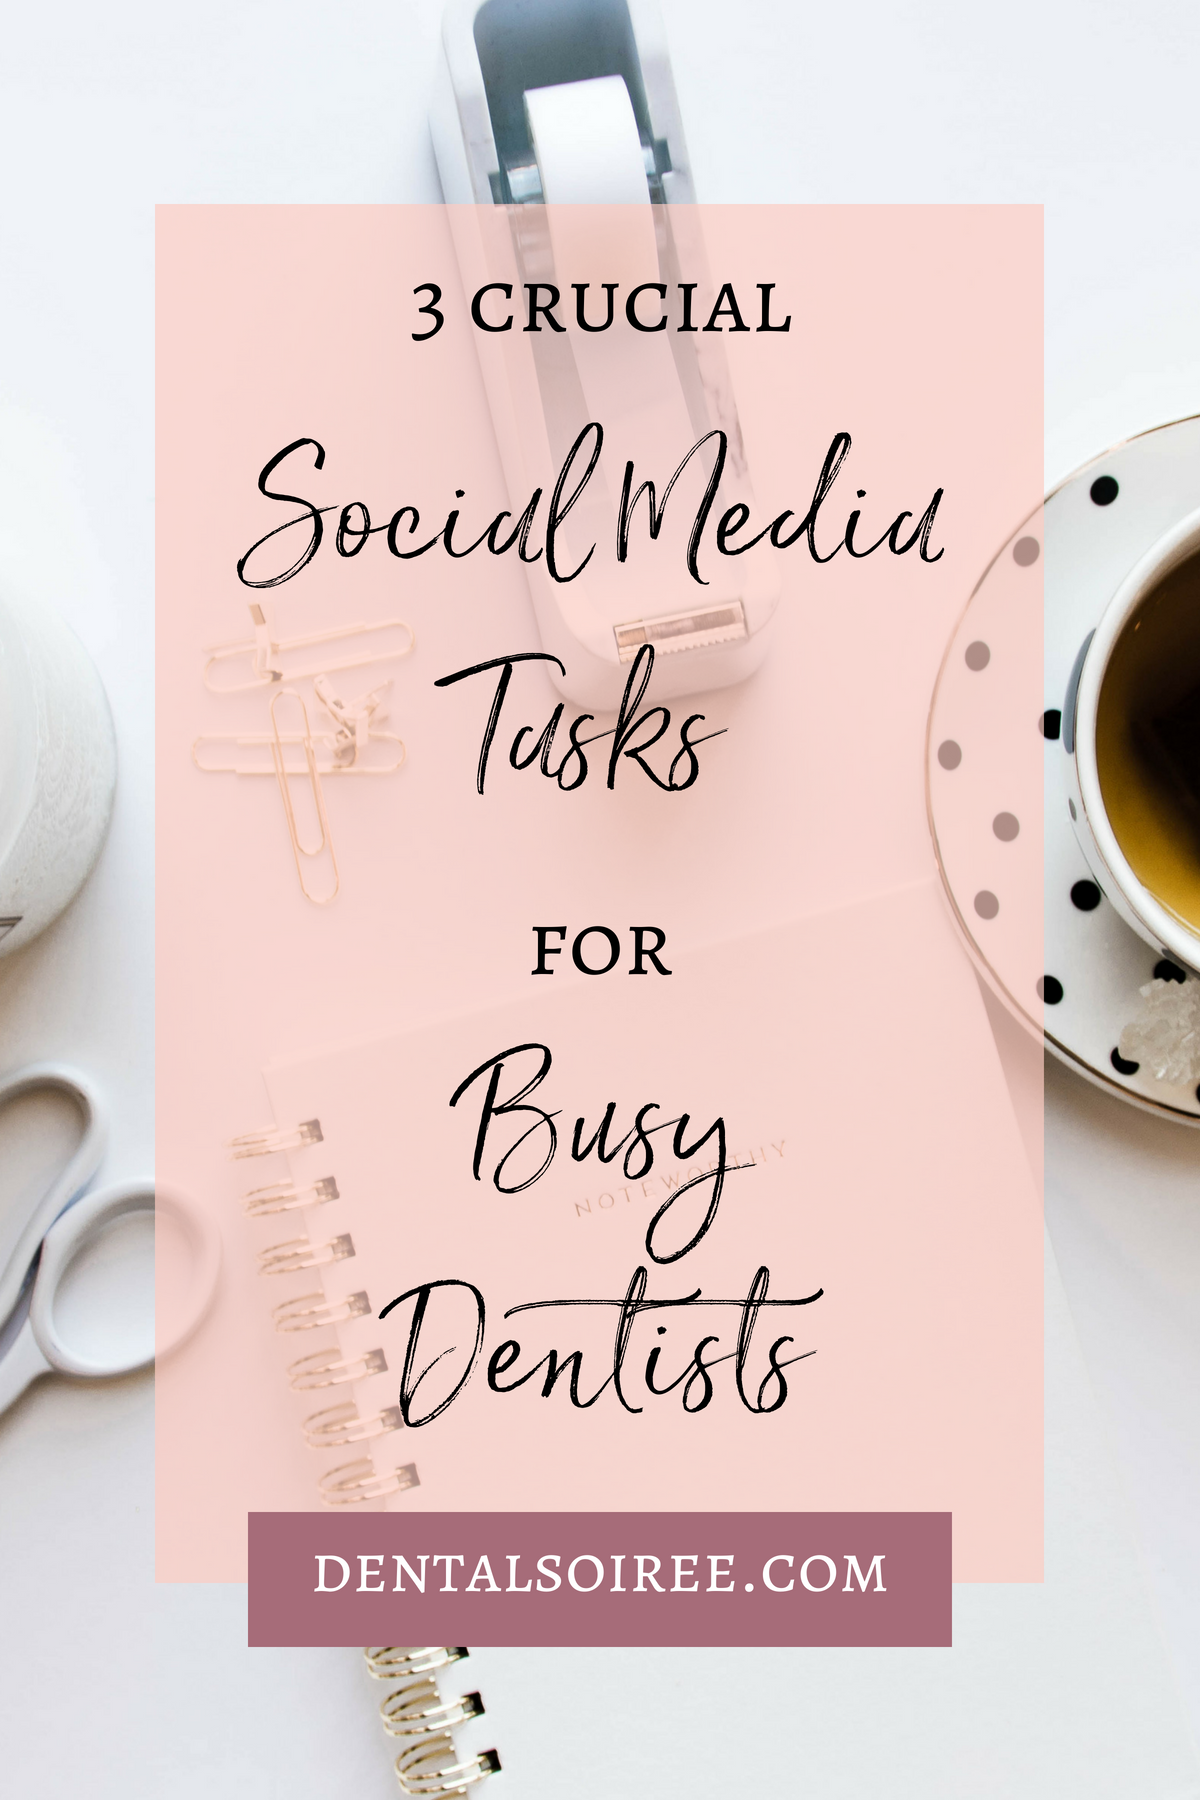 Crunched for Time? Do These 3 Crucial Dental Social Media Tasks